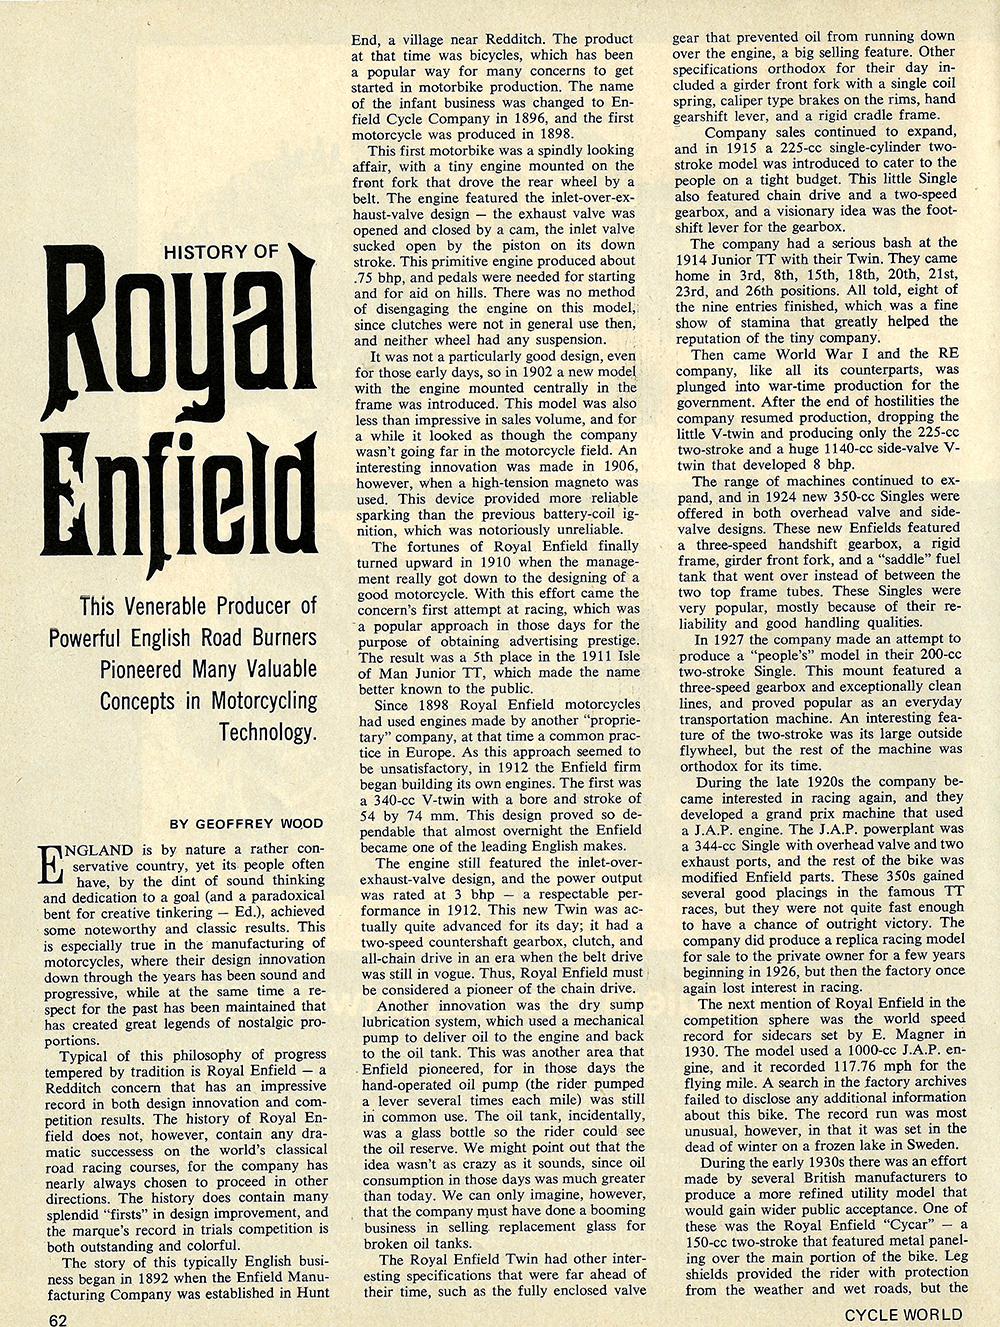 1970 History of Royal Enfield 01.jpg